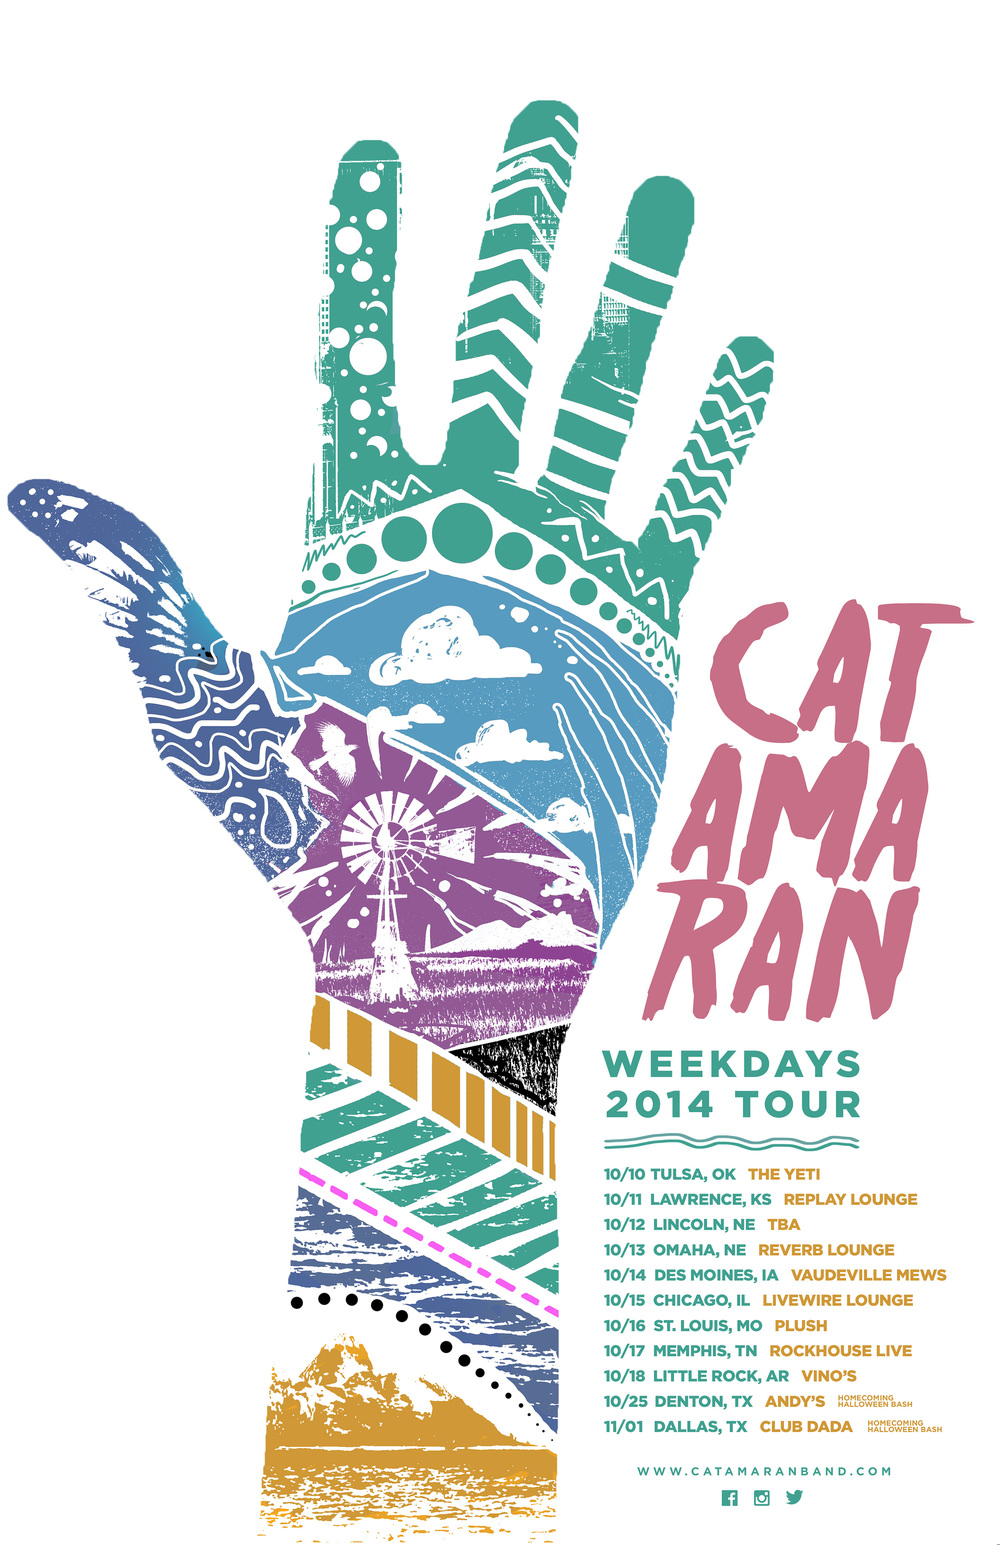 Weekdays 2014 Tour Poster